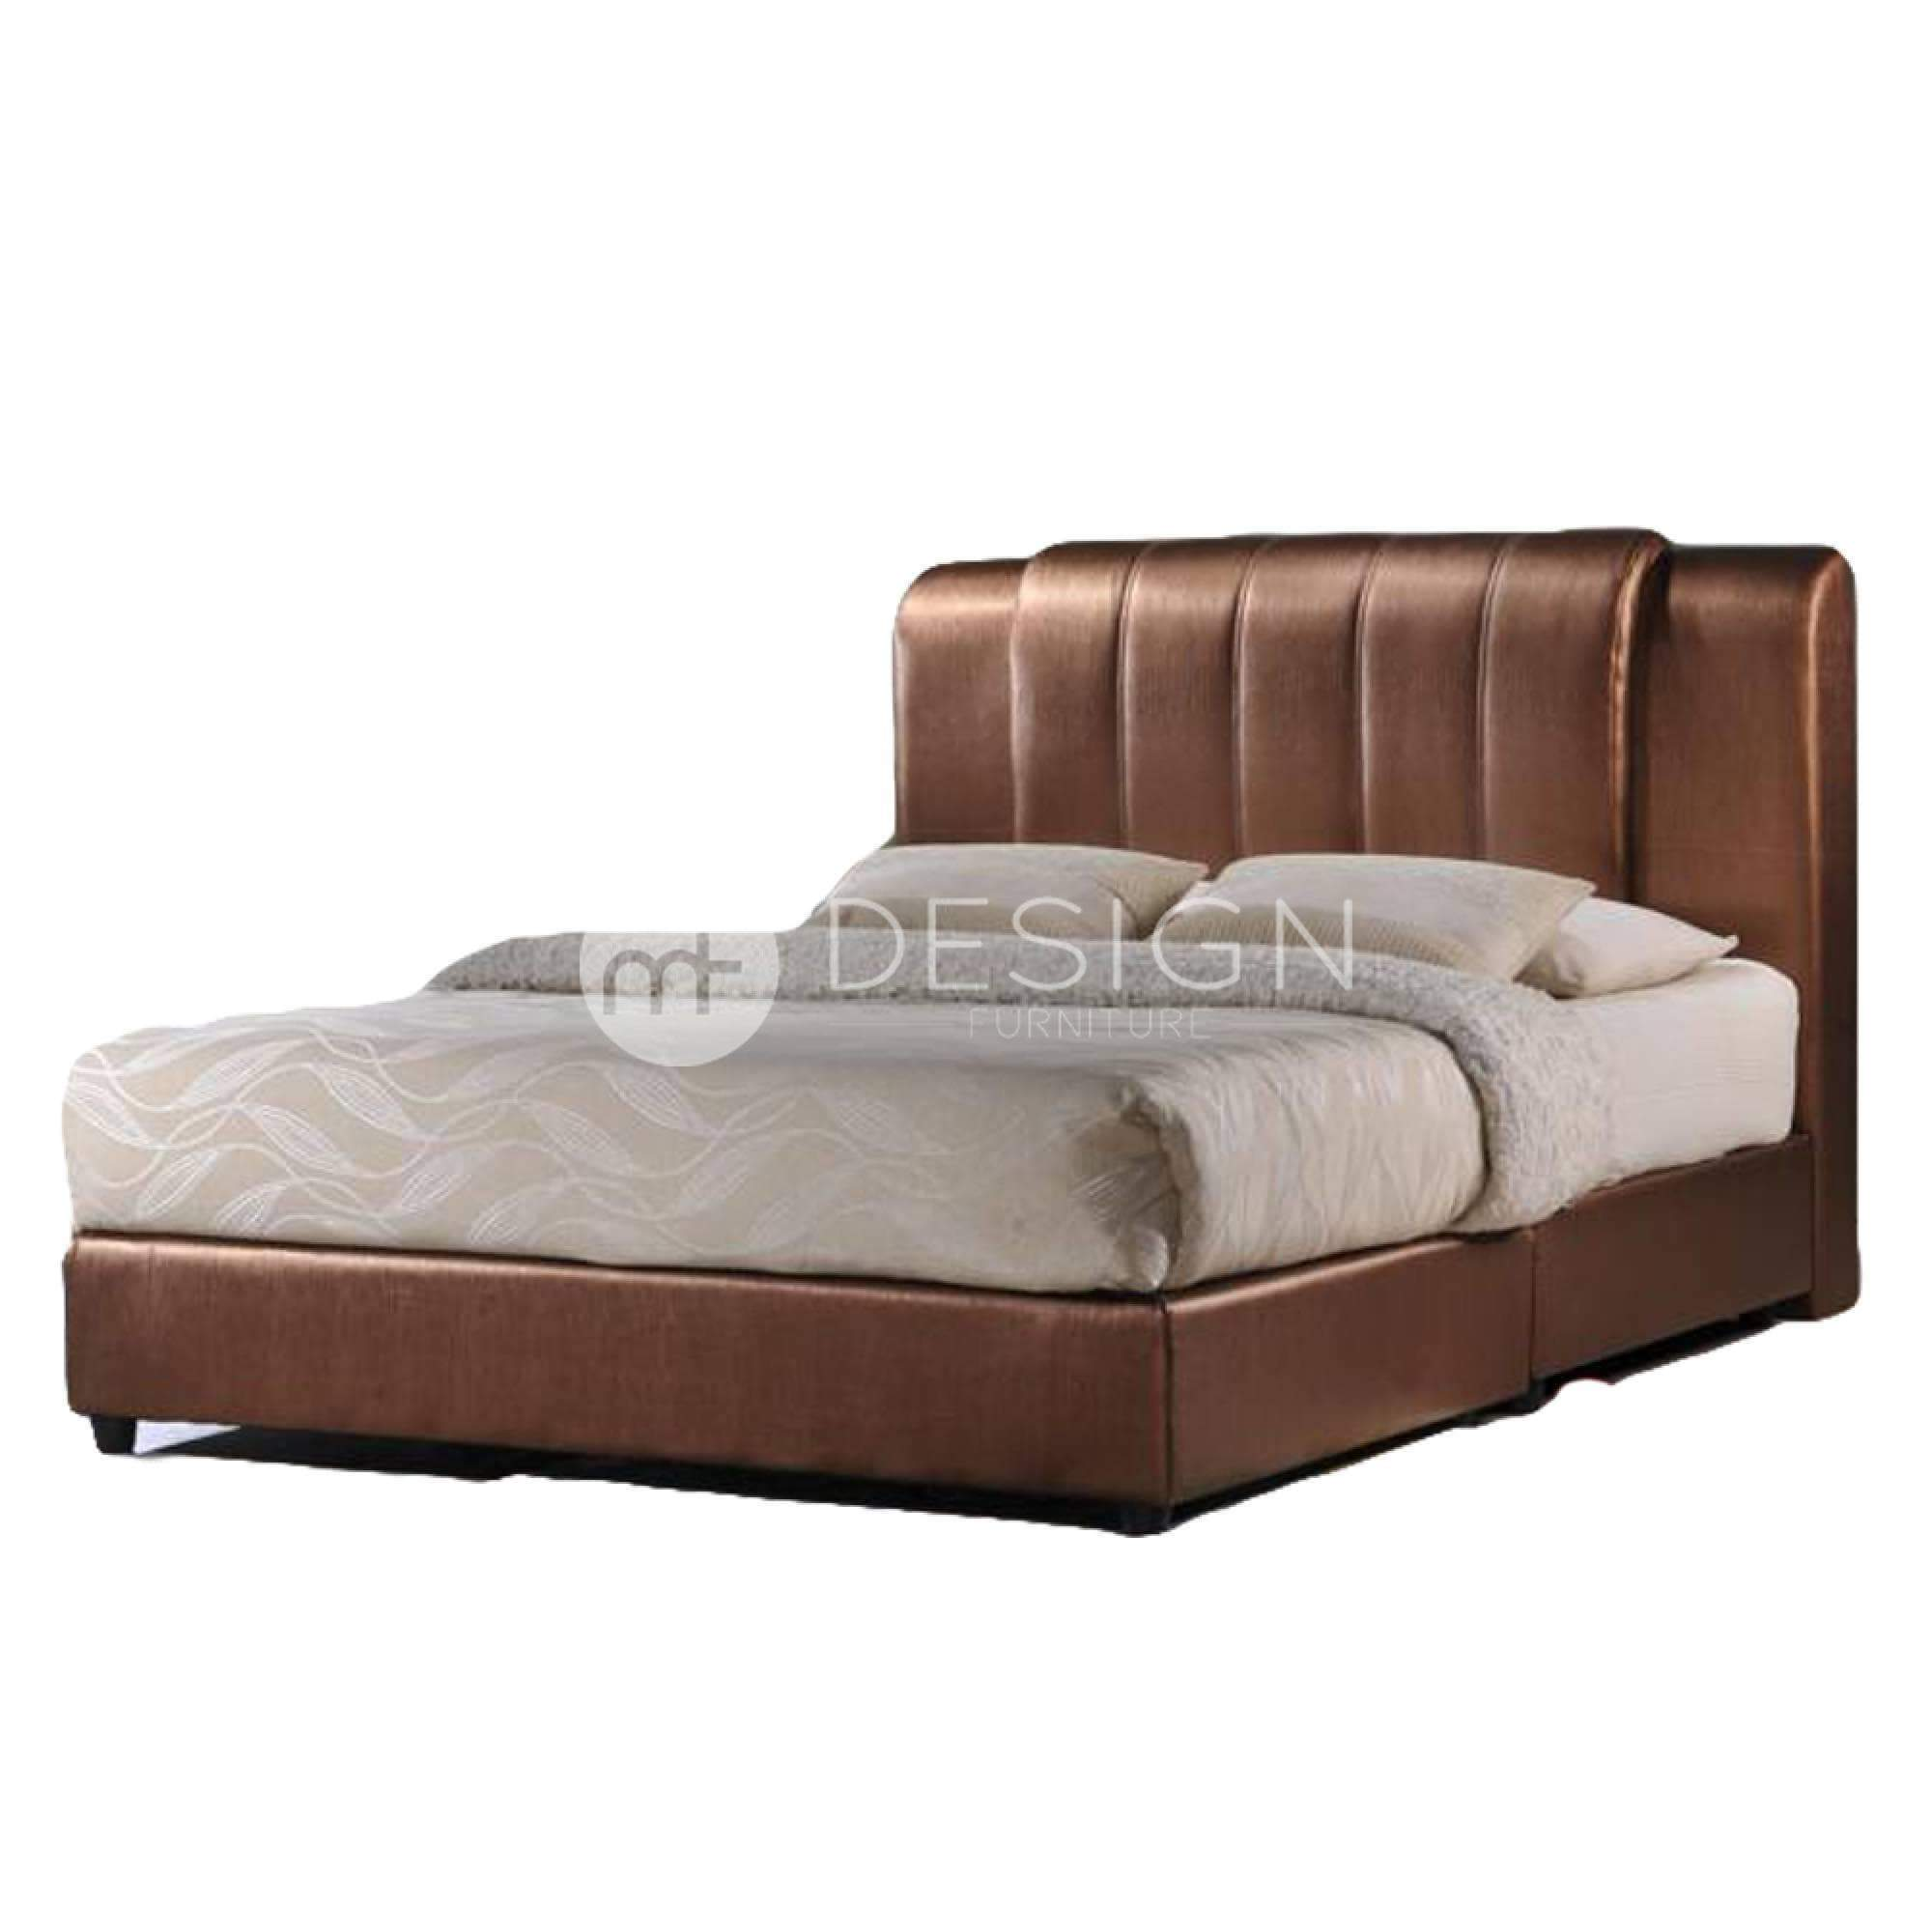 mfdesign88 GOLD MINER QUEEN SIZE DIVAN BED